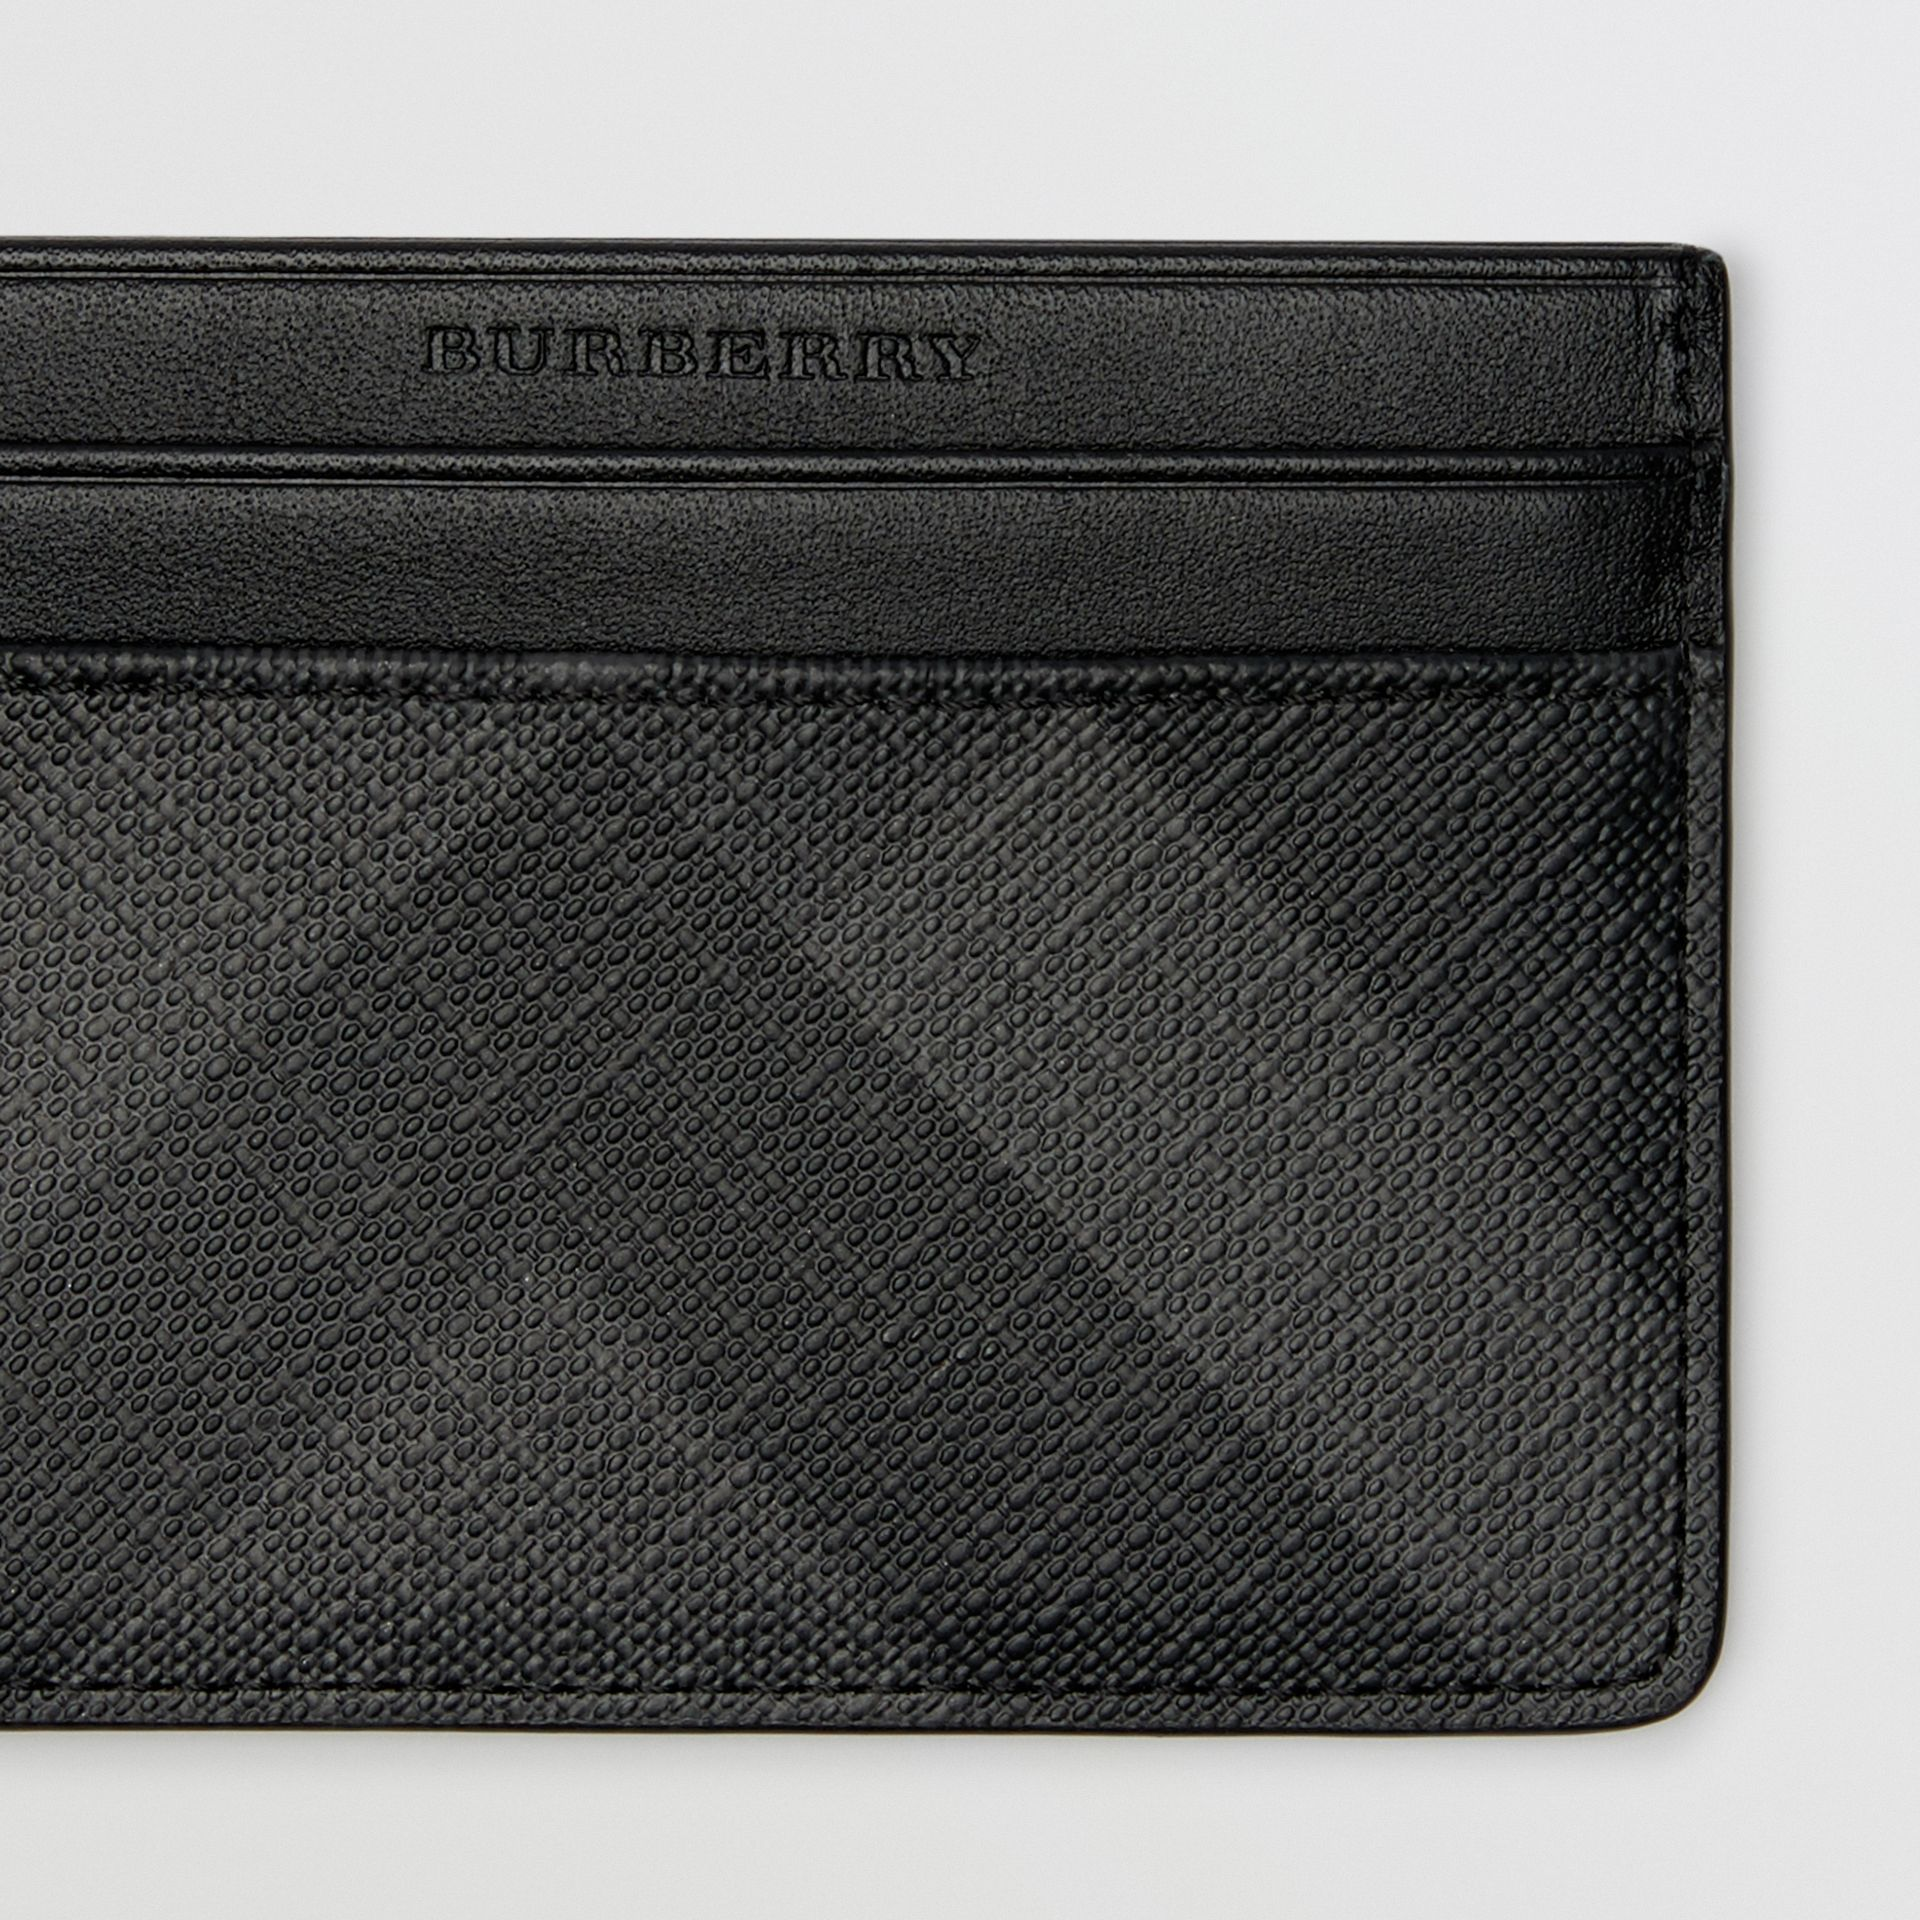 Porte-cartes à motif London check (Anthracite/noir) - Homme | Burberry - photo de la galerie 1